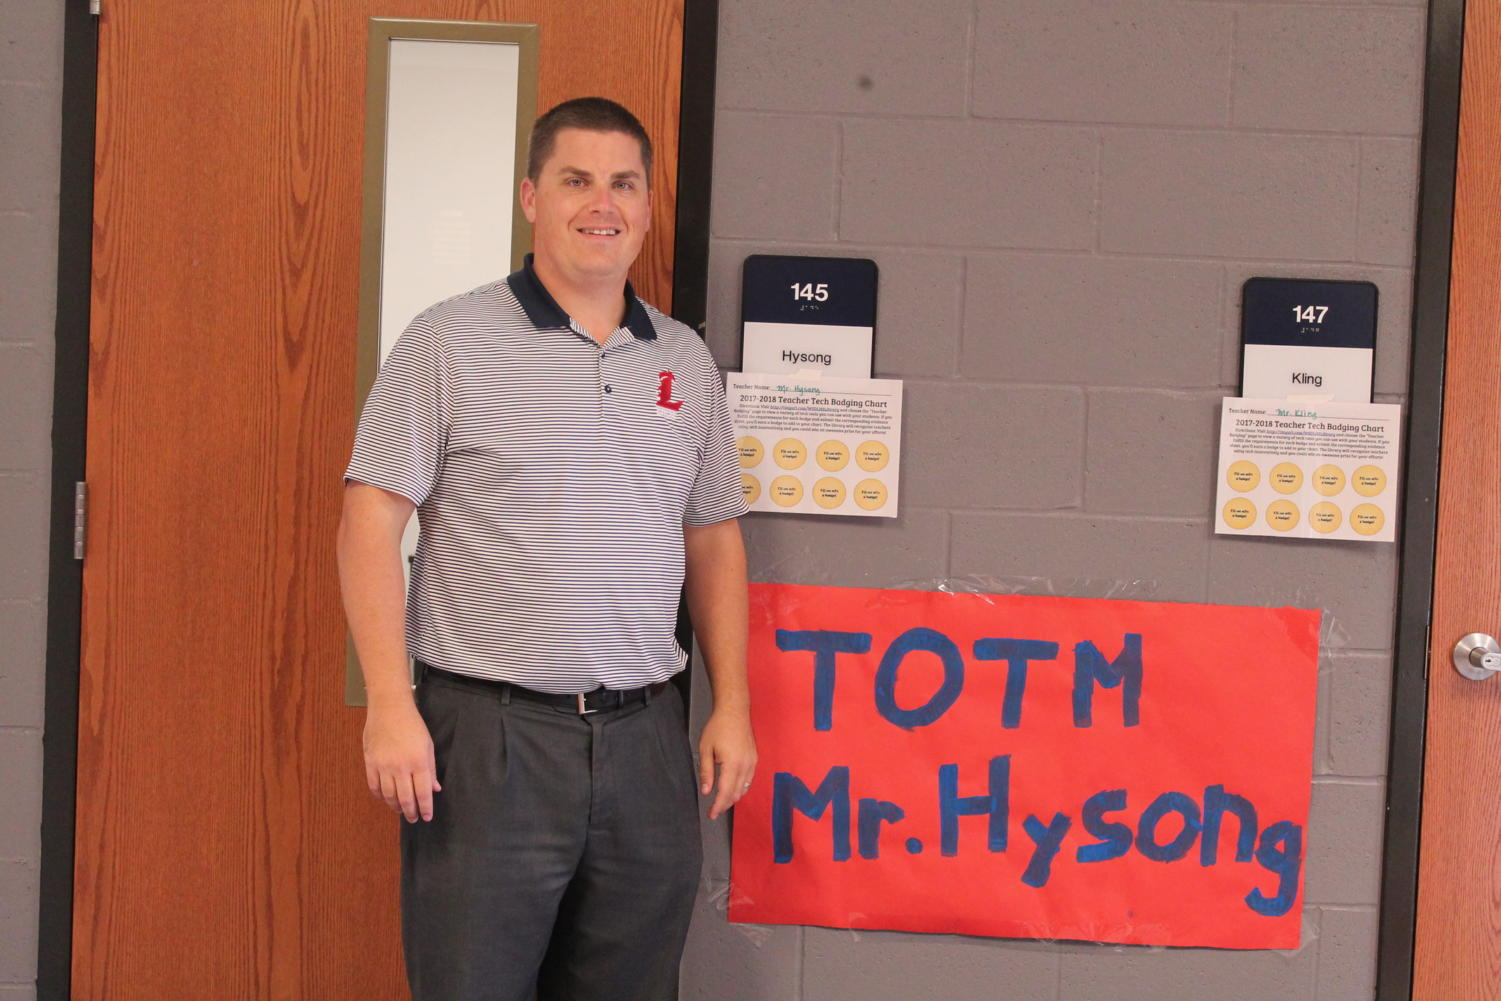 Mr. Hysong was named October's teacher of the month after continuous hard work.